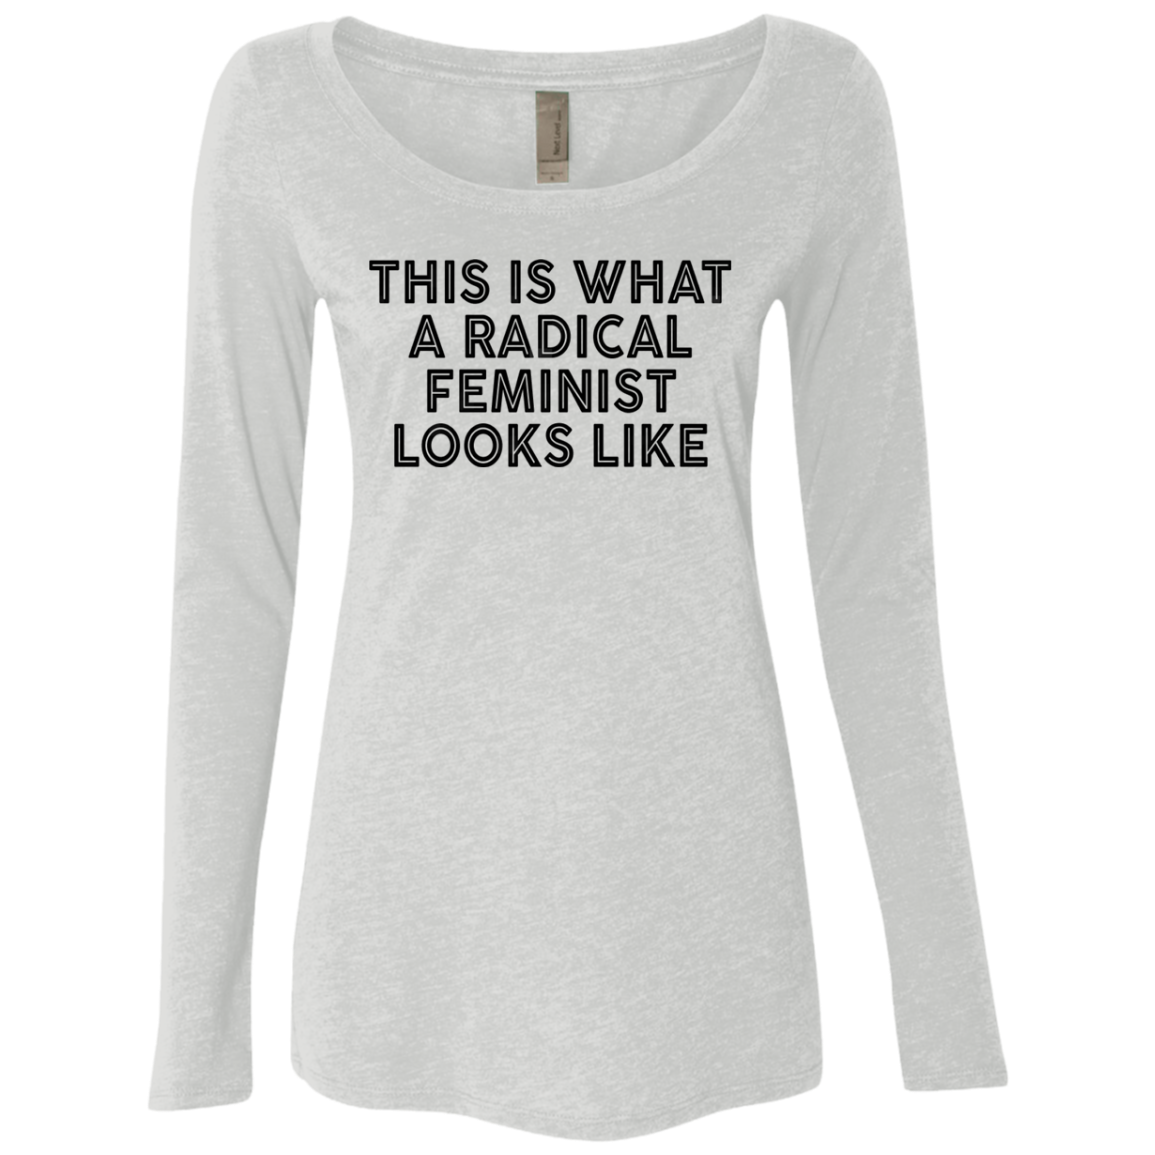 This Is What A Radical Feminist Looks Like Women's Long Sleeve Tee